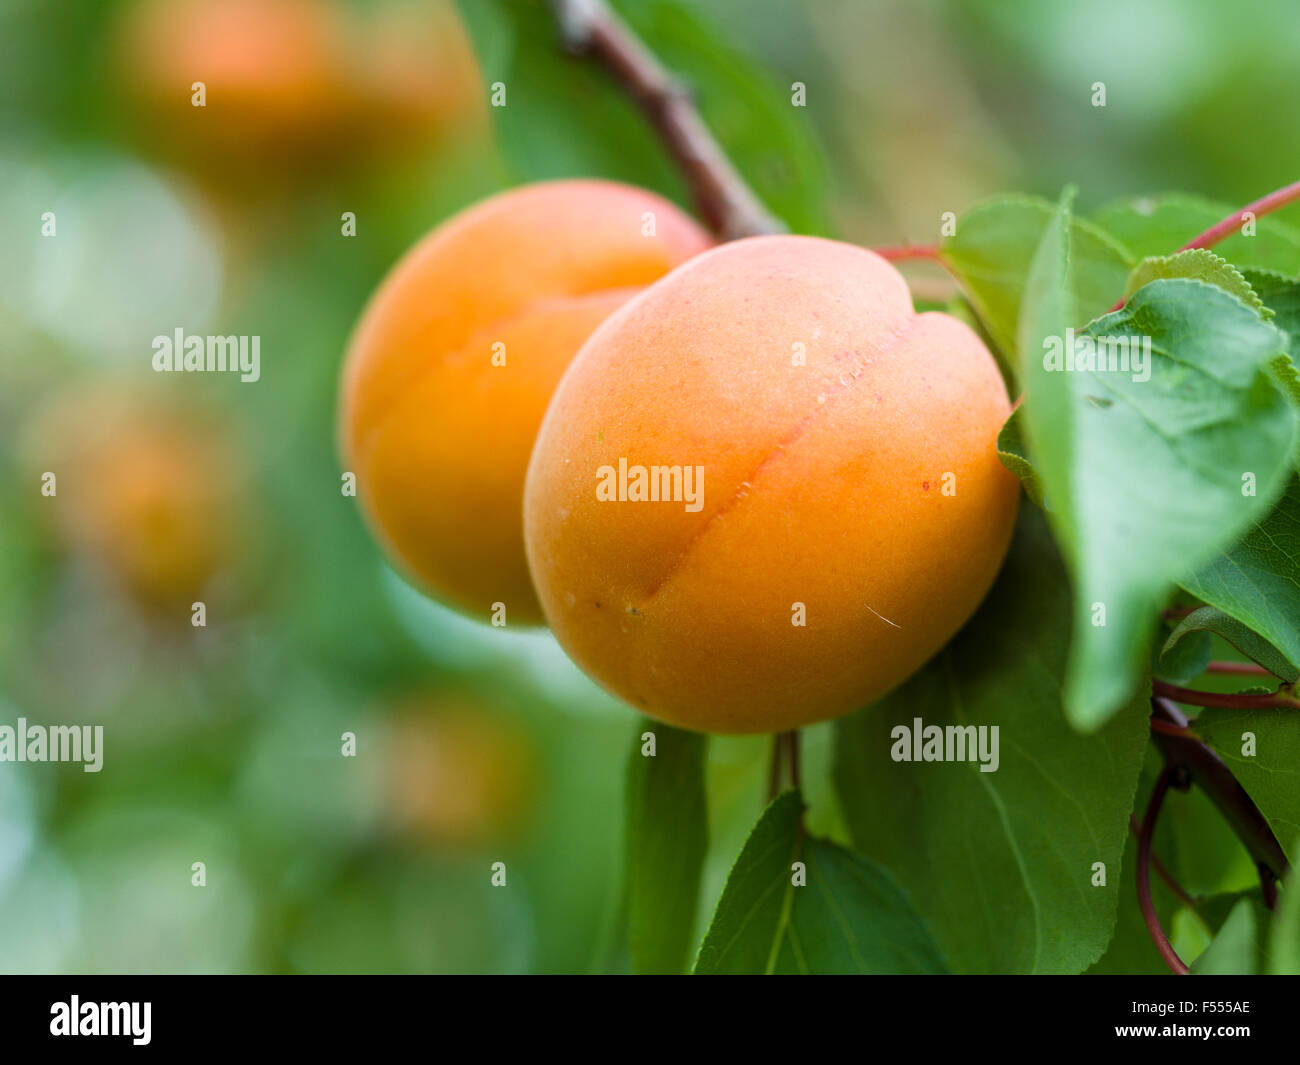 Two Apricots ripening on the tree. Two almost ripe apricot fruits hang from a leafy branch. - Stock Image